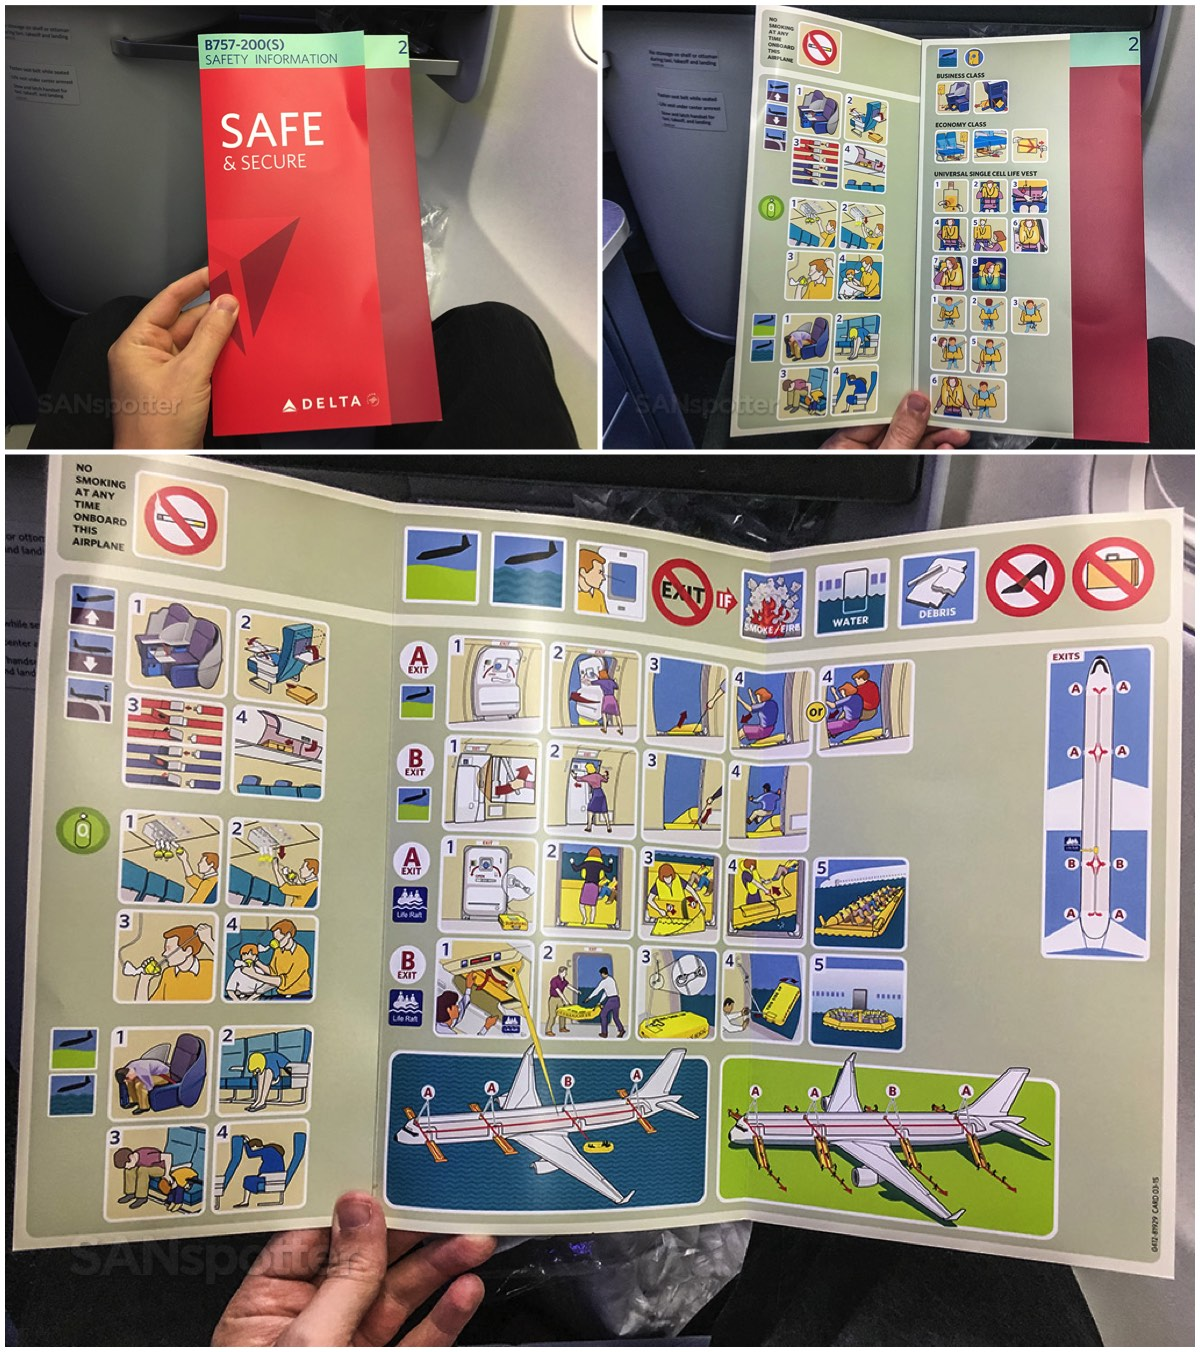 Delta 757-200 safety card